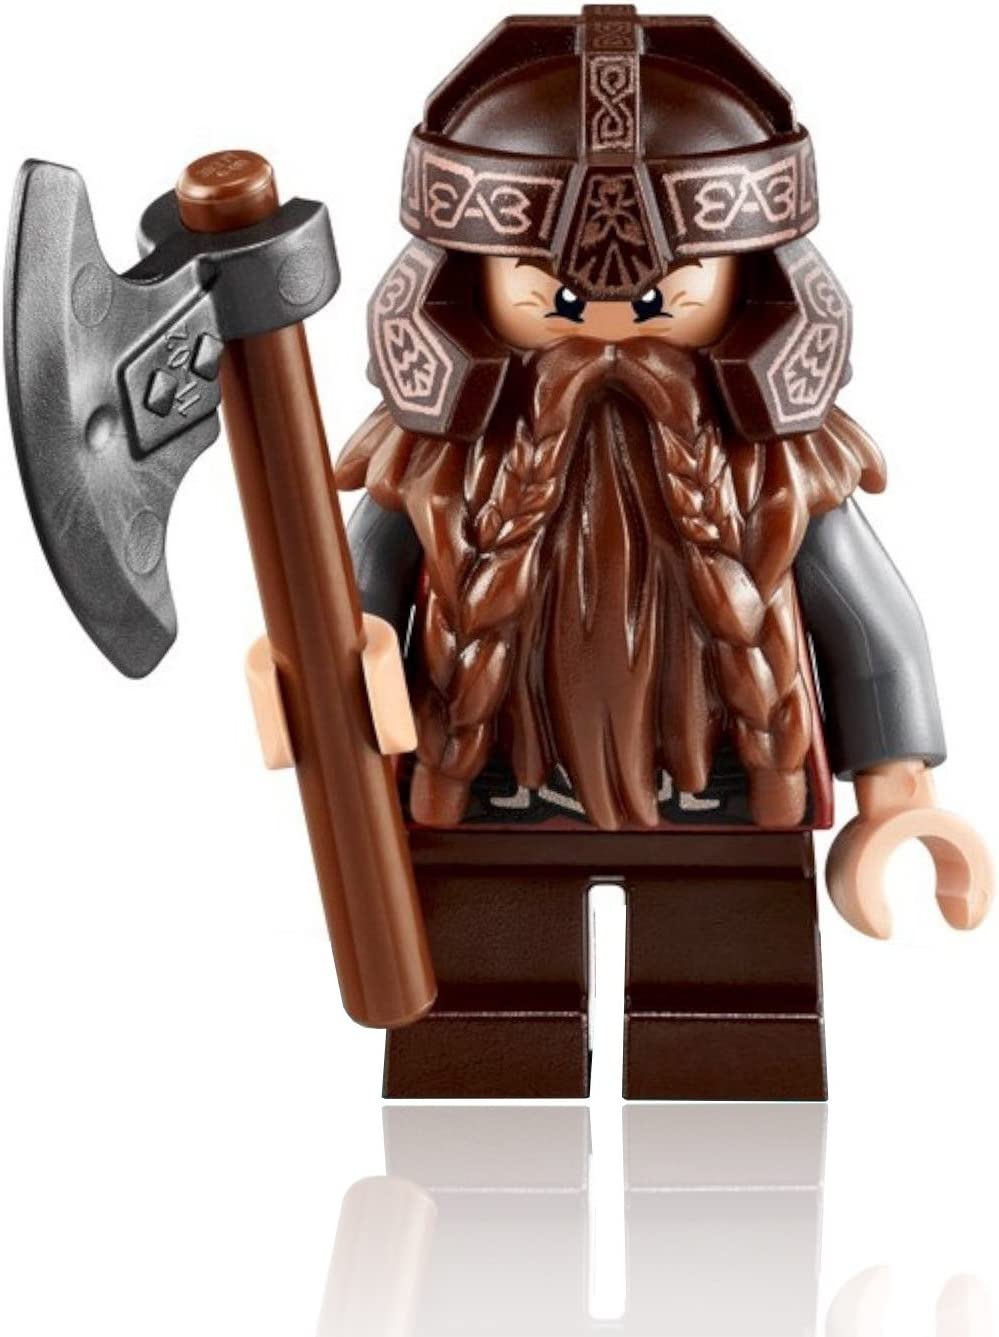 LEGO the Lord of the Rings MiniFigure - Gimli the Dwarf (with Axe) 79008